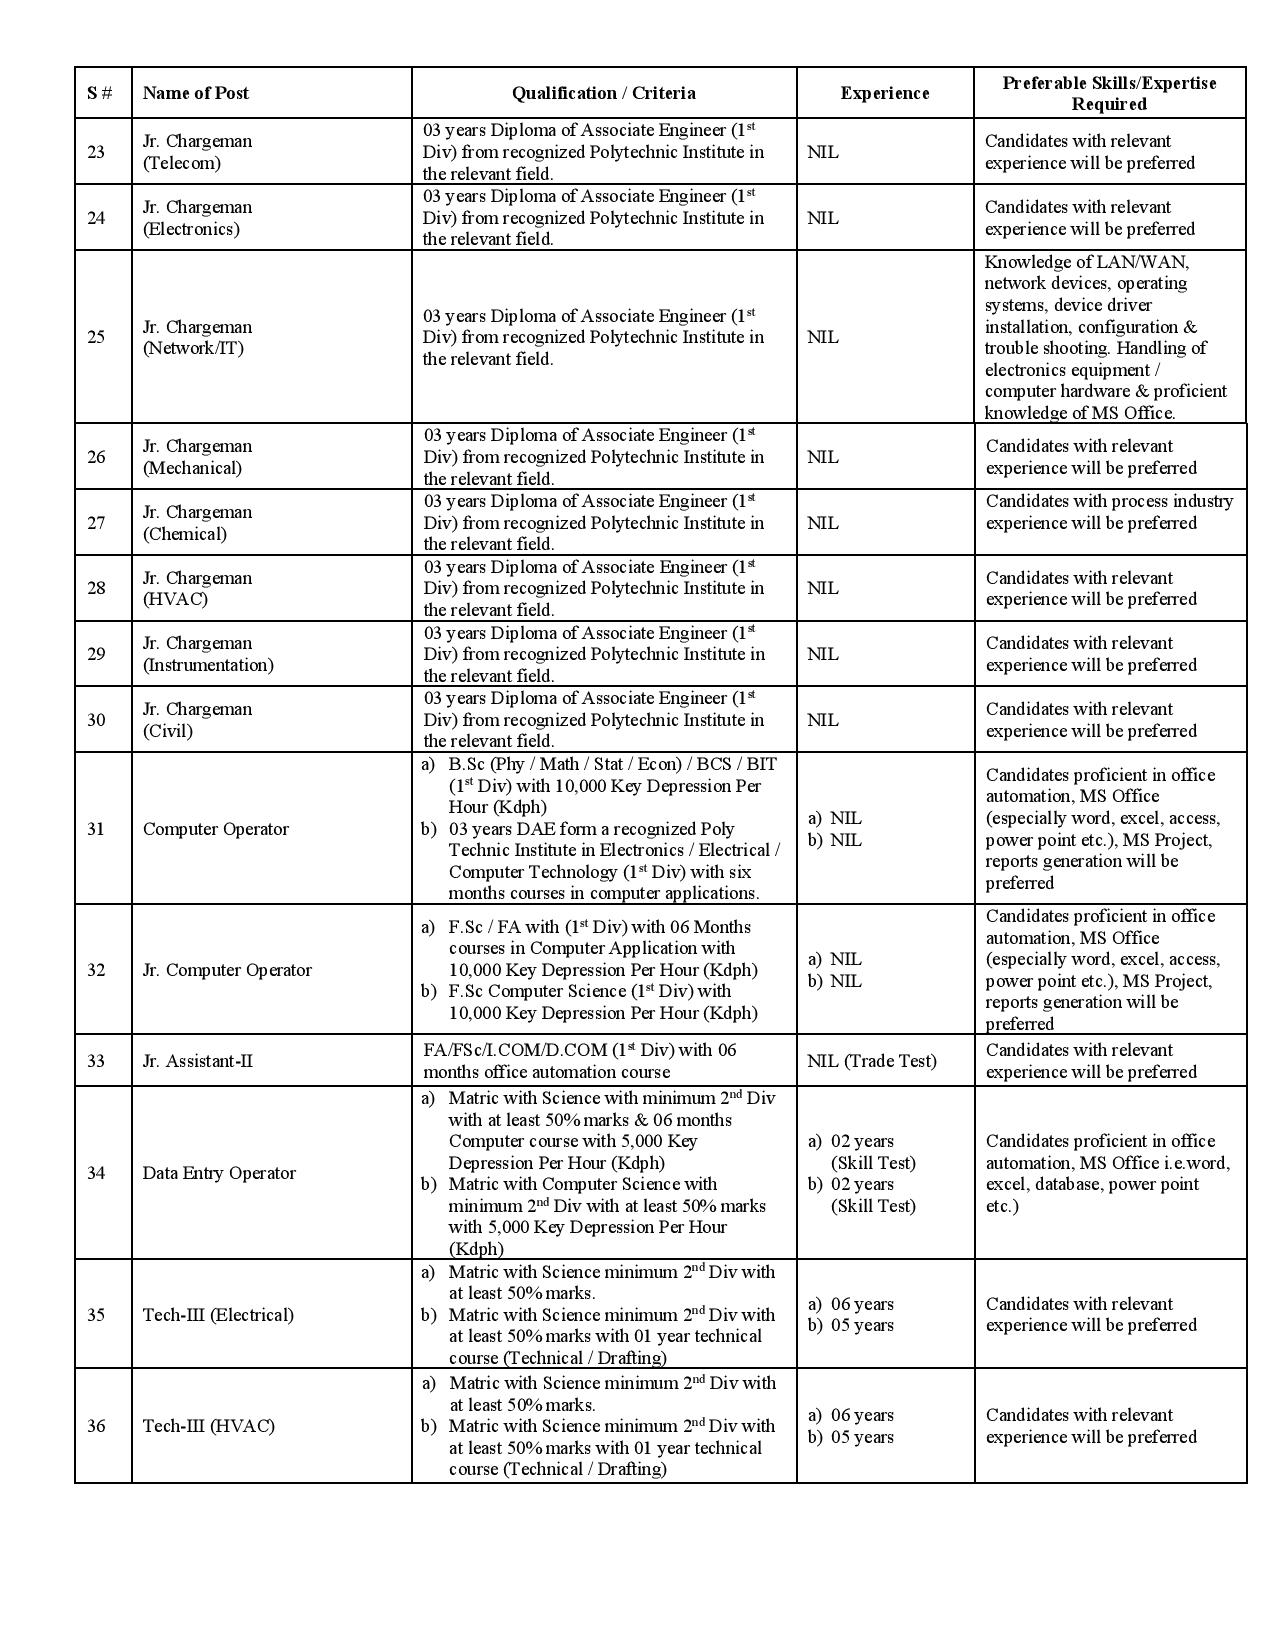 www.techandresearch.com Jobs 2021 Online Application Form NESCOM Assistant Managers, Junior / Chargeman & Others Latest